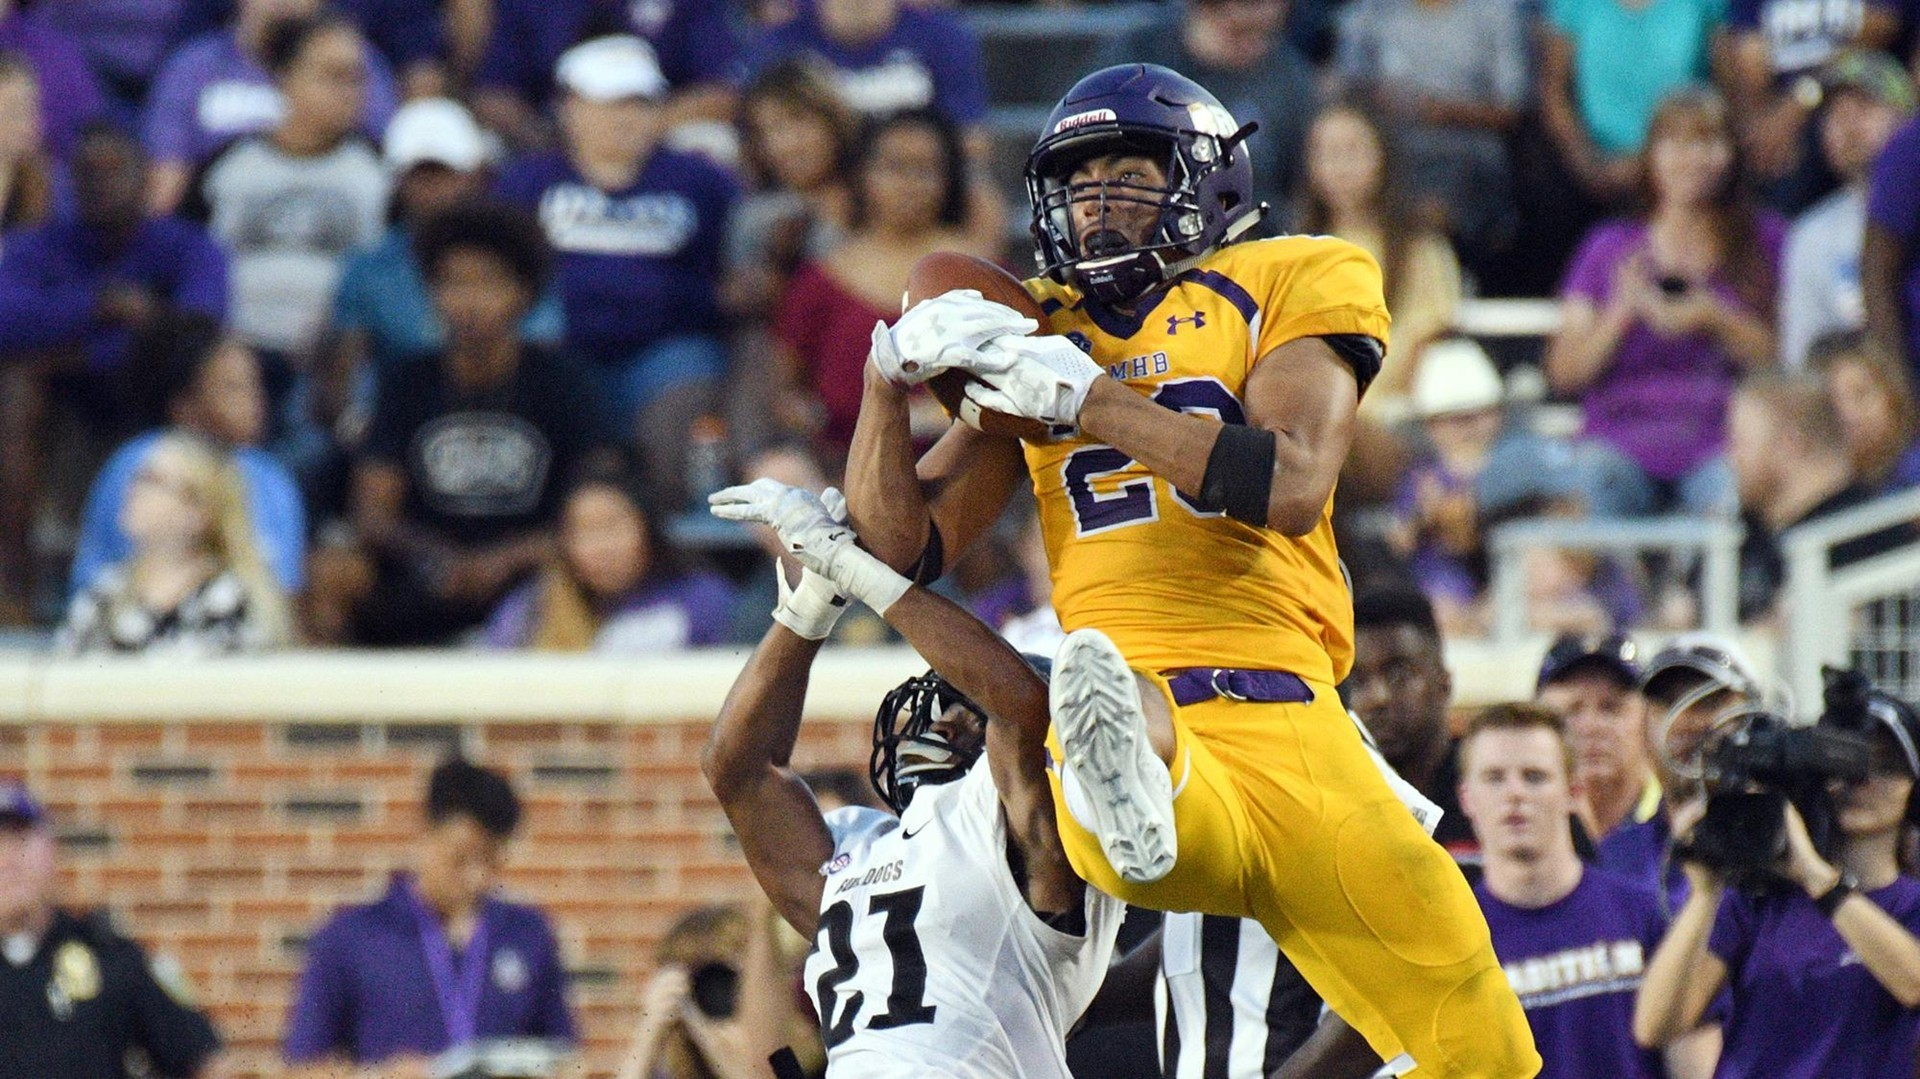 UMHB sophomore wide receiver Jonel Reed brings in a catch during Saturday's 50-7 win over Texas Lutheran.